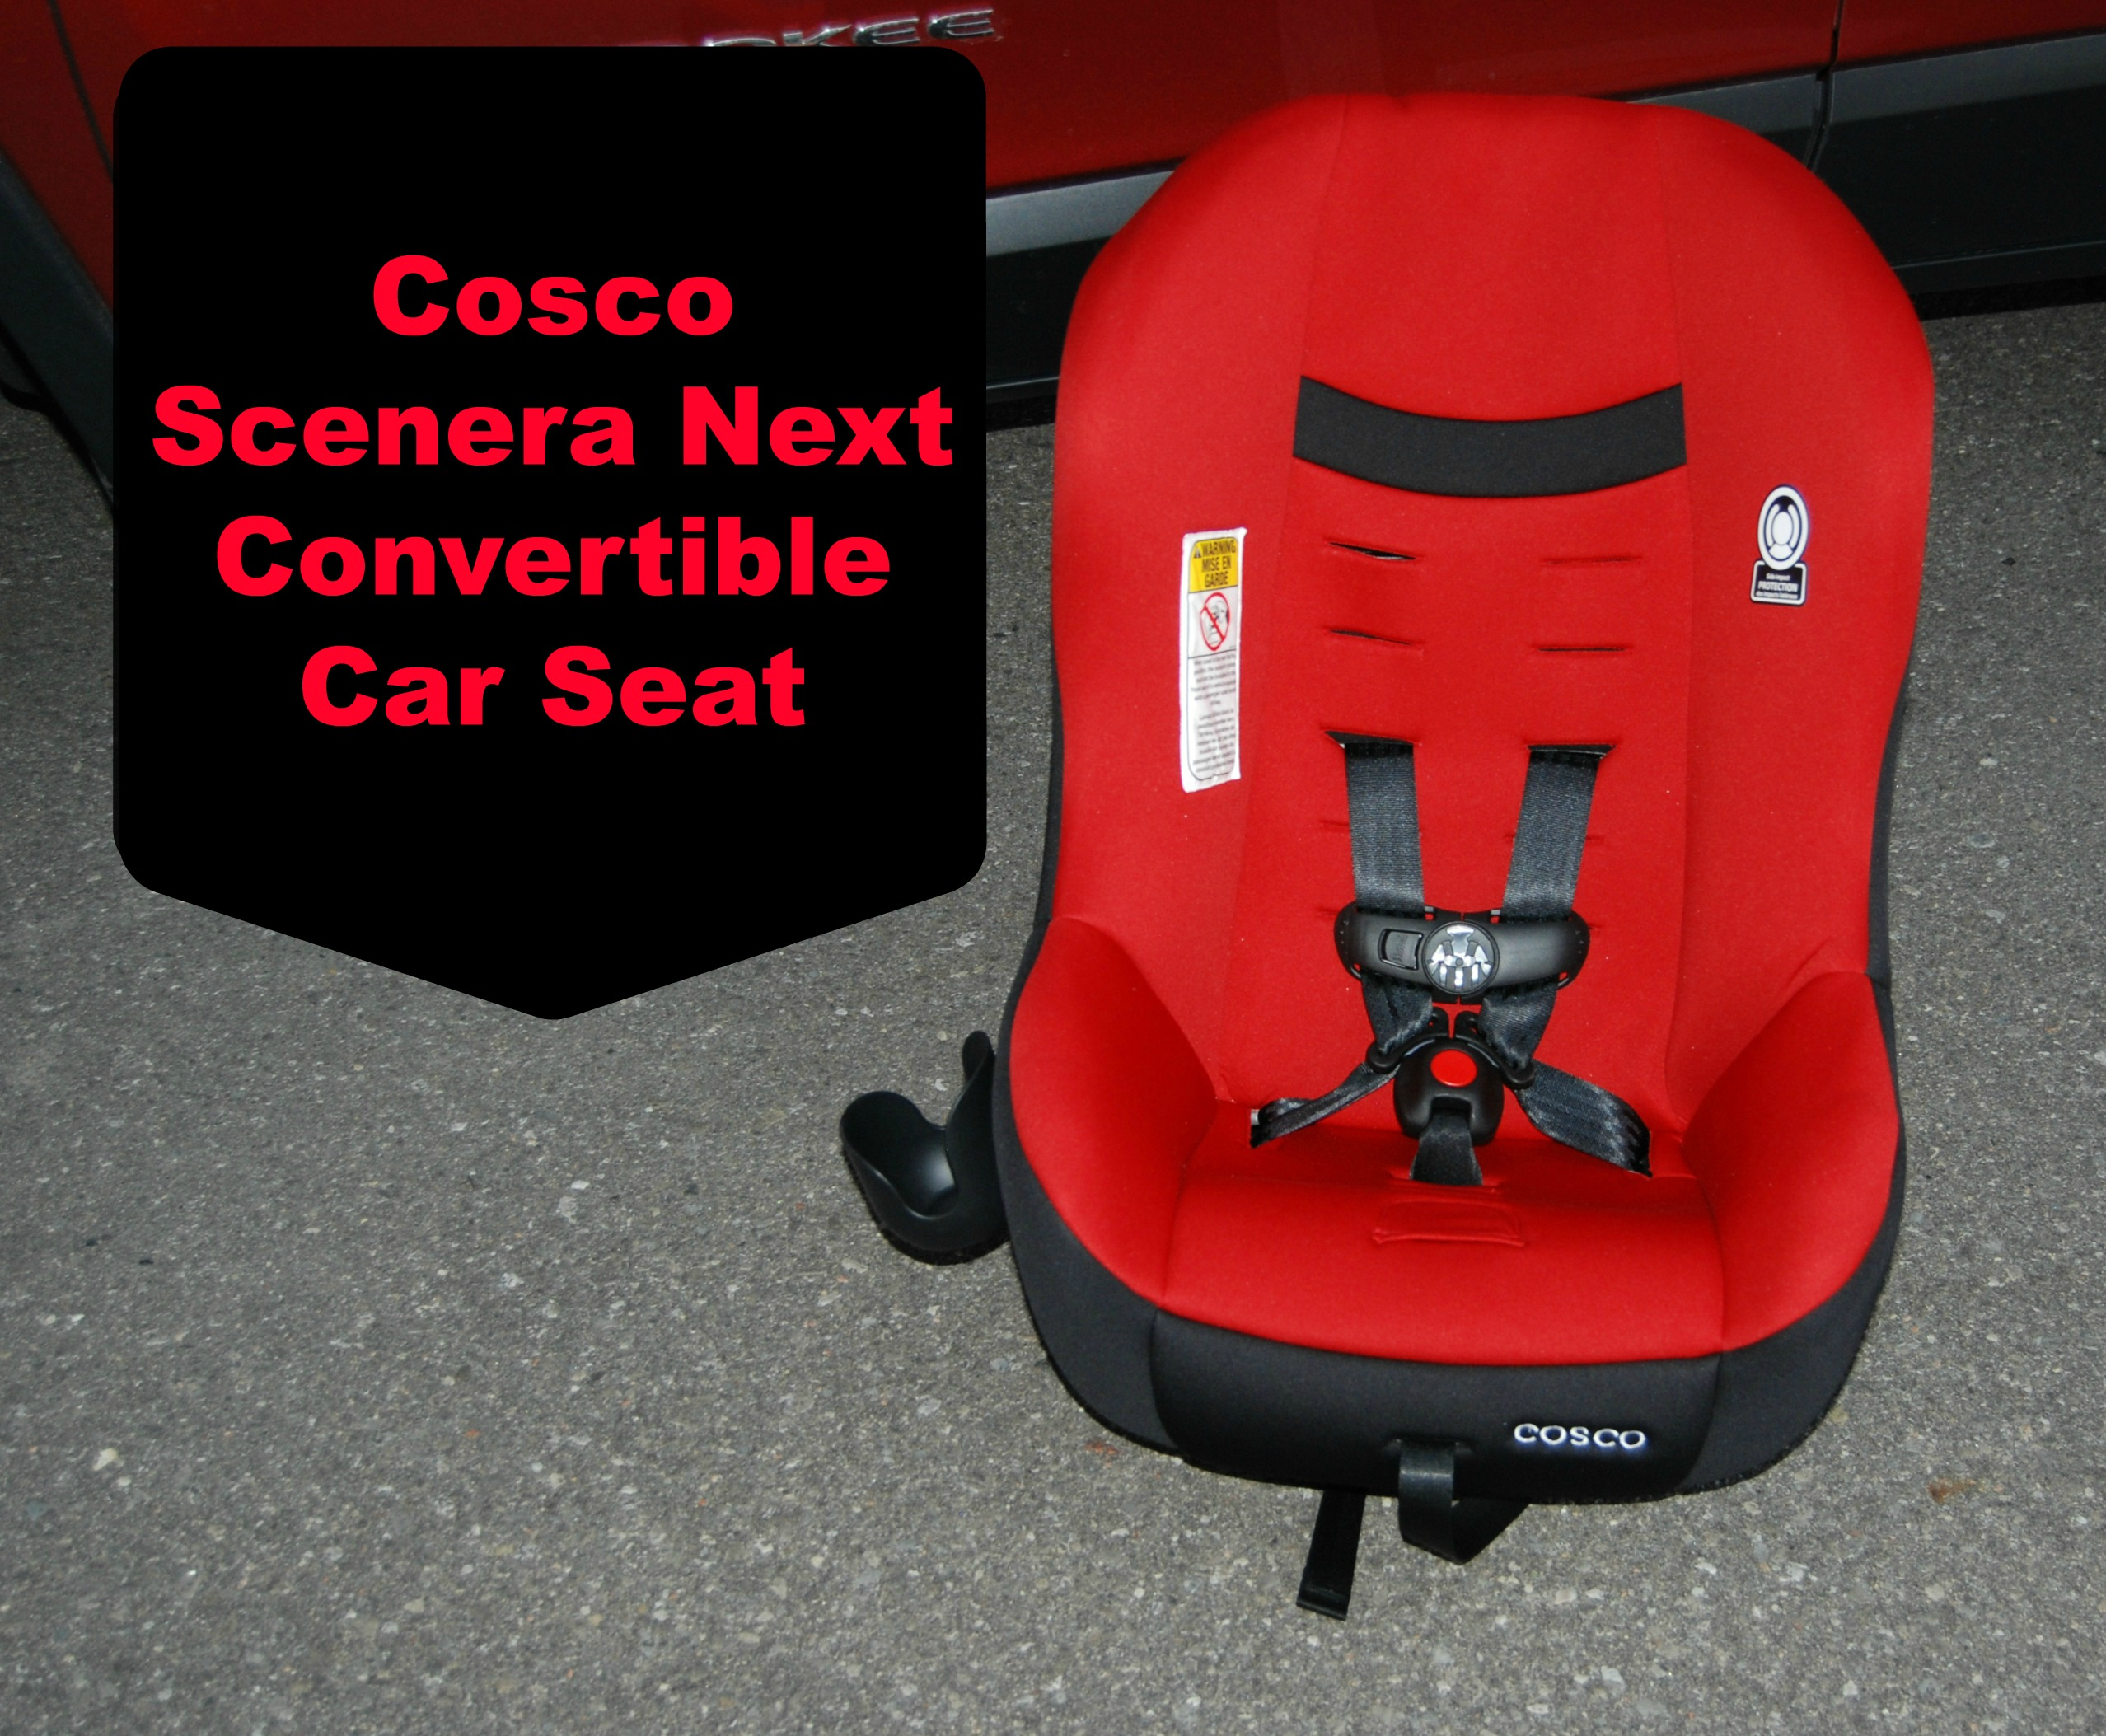 Convertible Car Seat: Cosco Scenera Next Convertible Car Seat #REVIEW